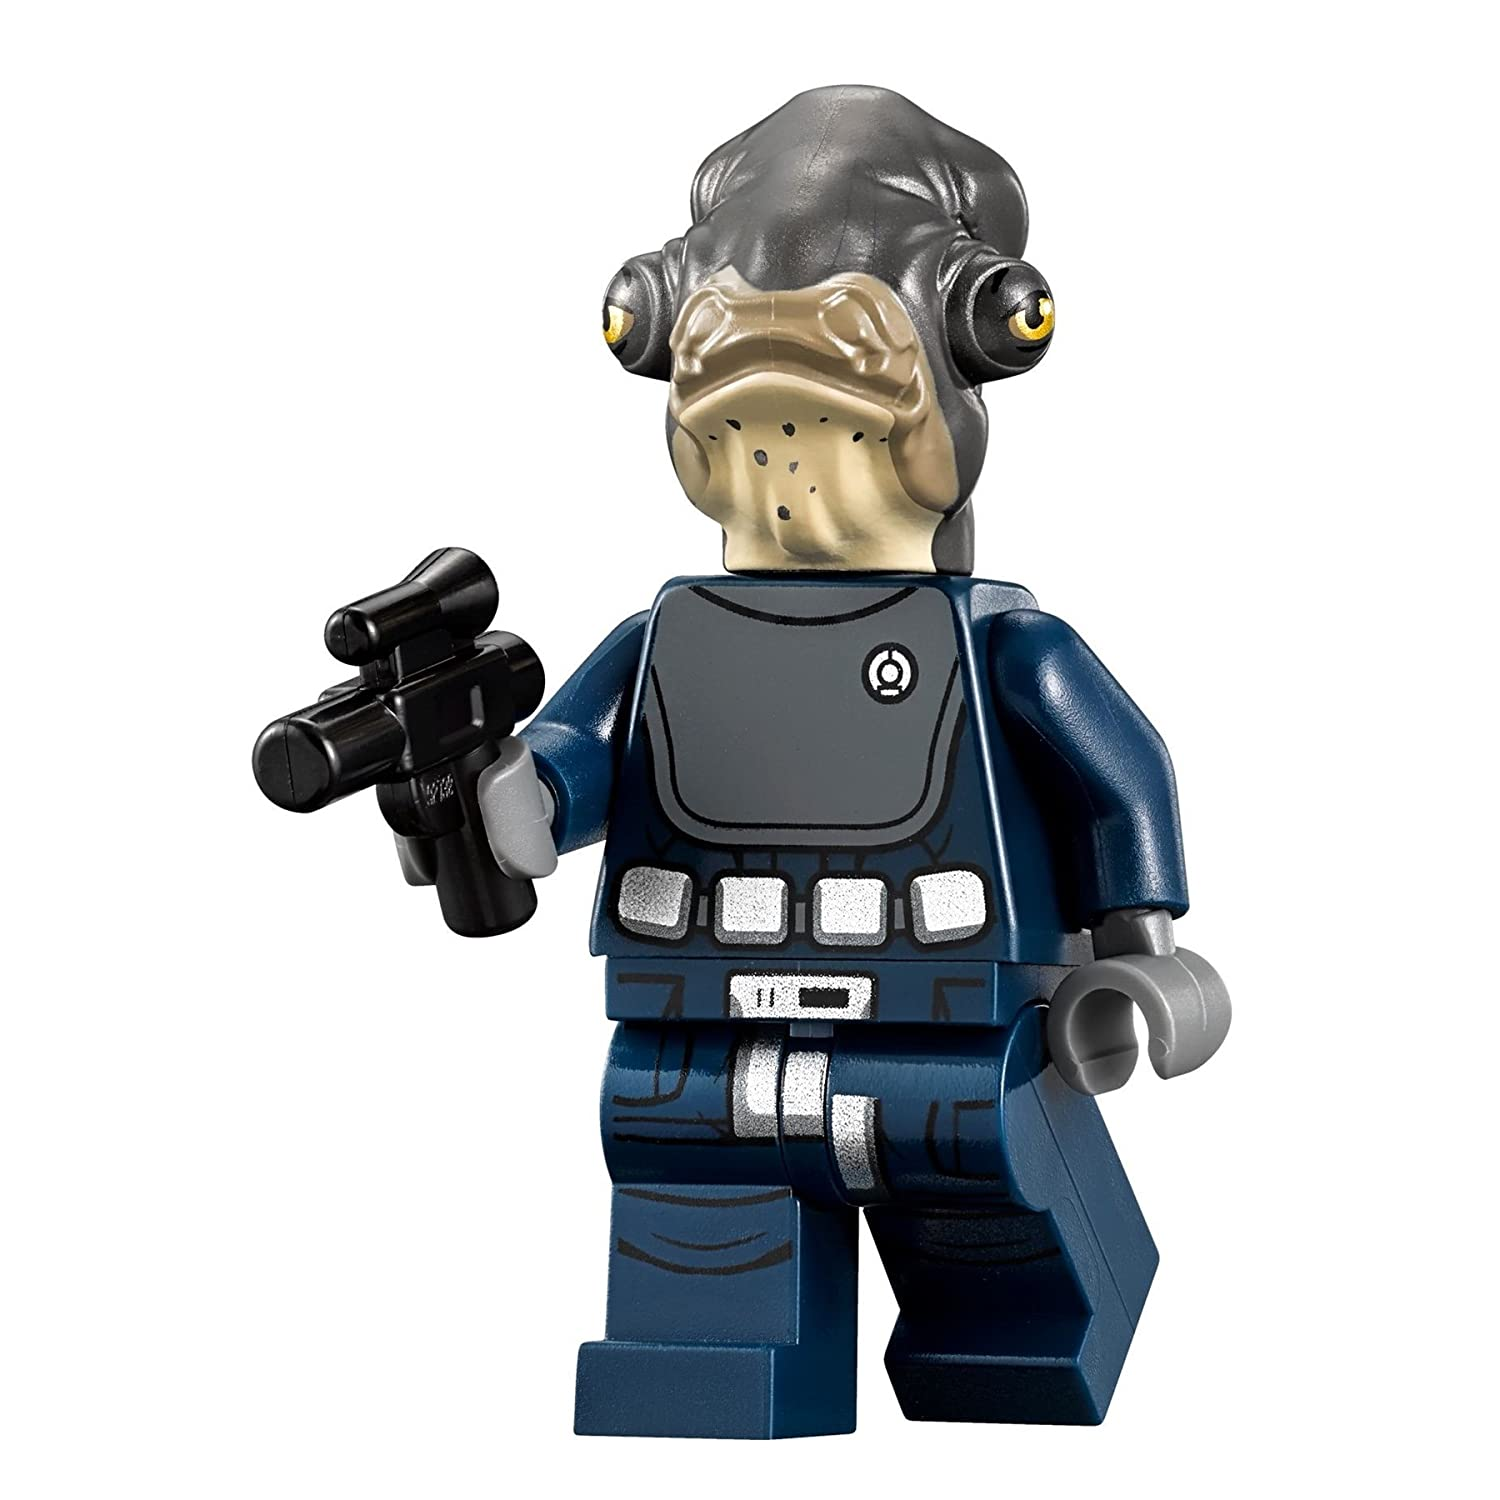 LEGO Star Wars: Rogue One MiniFigure - Admiral Raddus (75172)